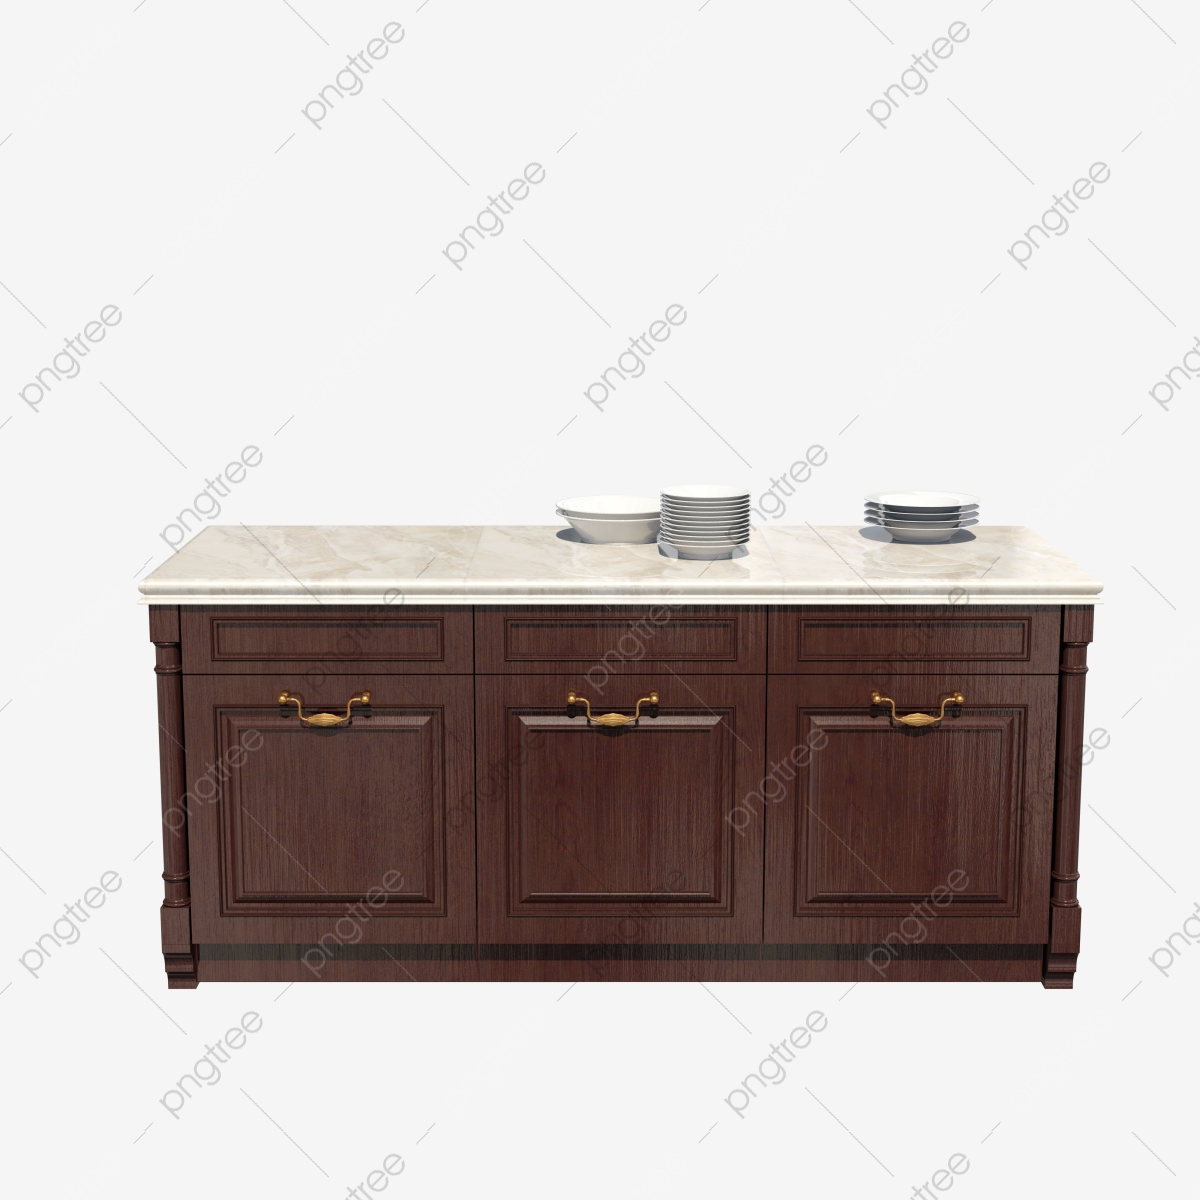 Kitchen Furniture Wooden Cabinet Kitchen Furniture Home